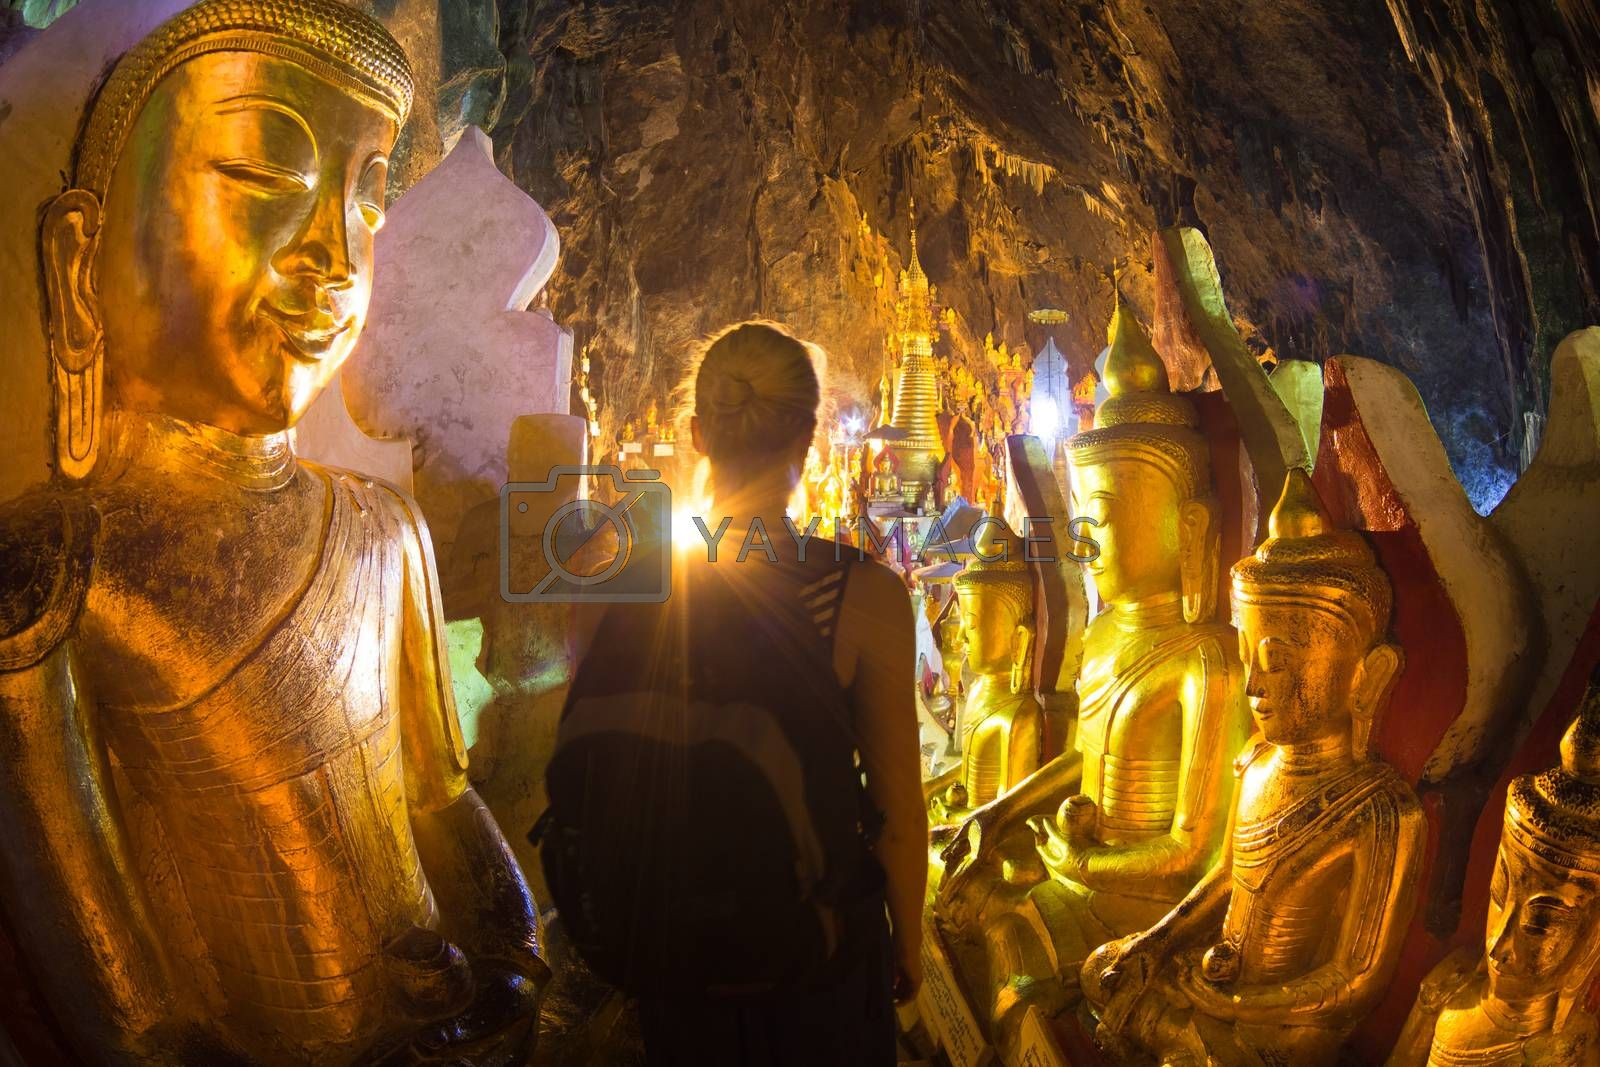 Royalty free image of Golden Buddha statues in Pindaya Cave, Burma by kasto